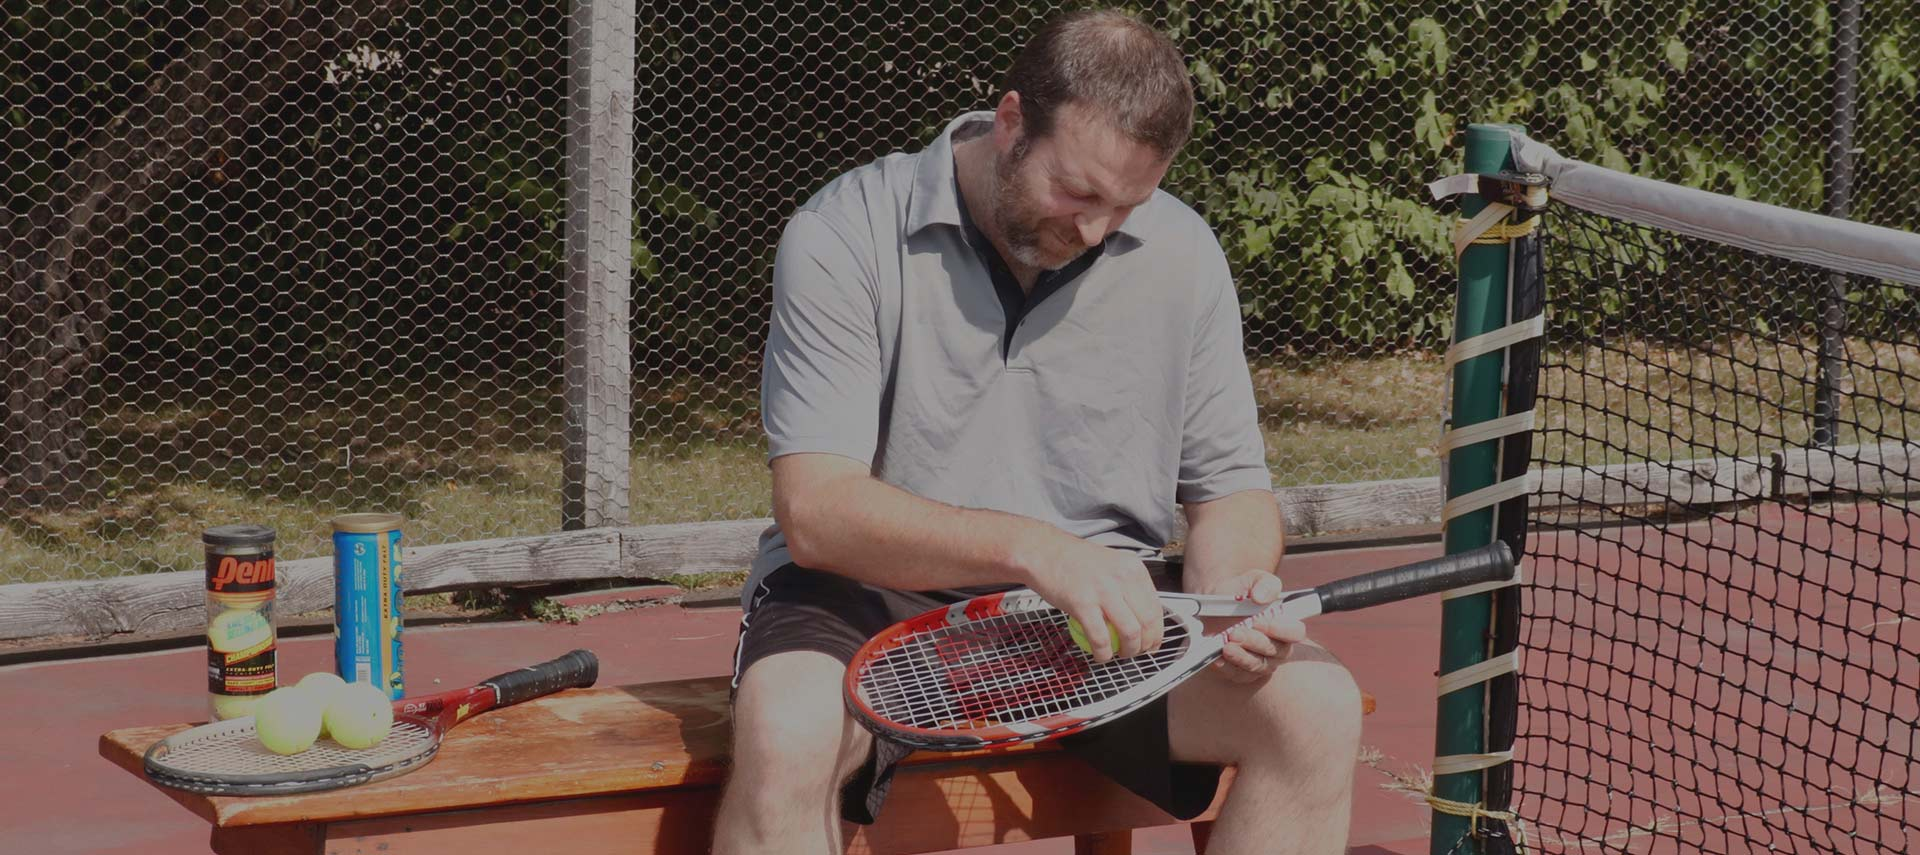 Boomer Tennis Robot - Play real tennis on your own court